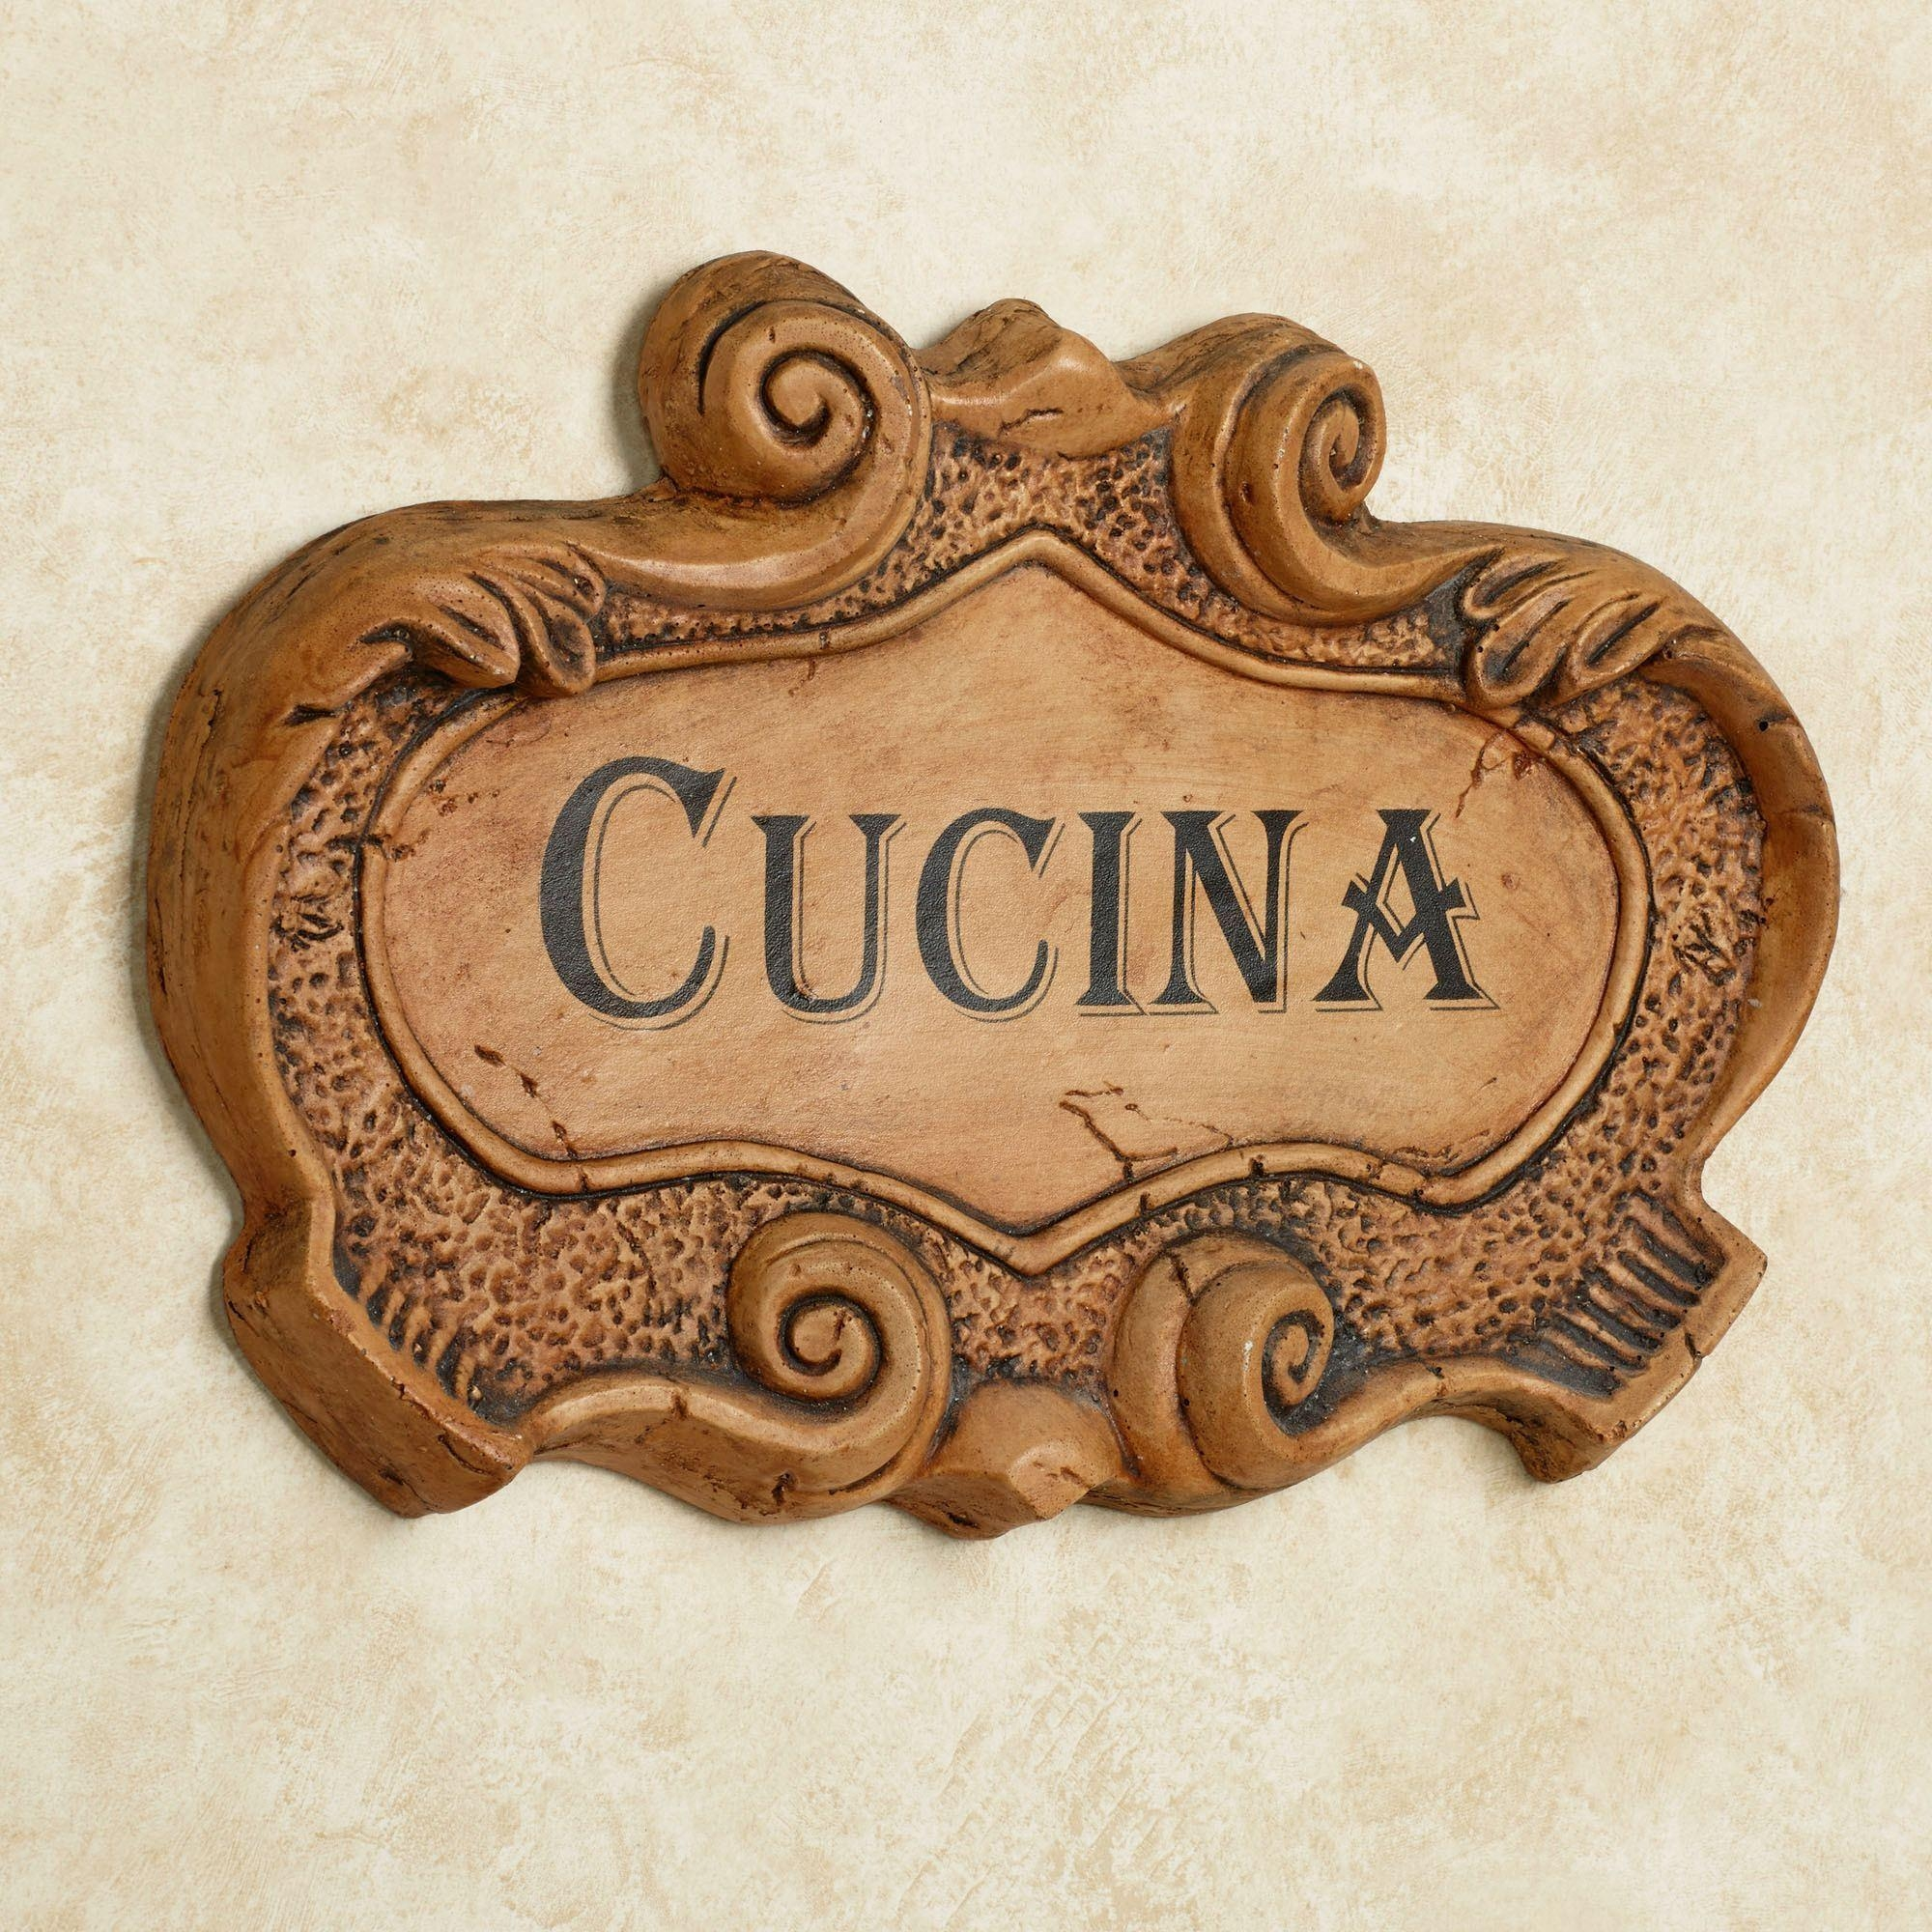 Cucina Italian Kitchen Wall Plaque Regarding Italian Wall Art For Kitchen (Image 5 of 20)